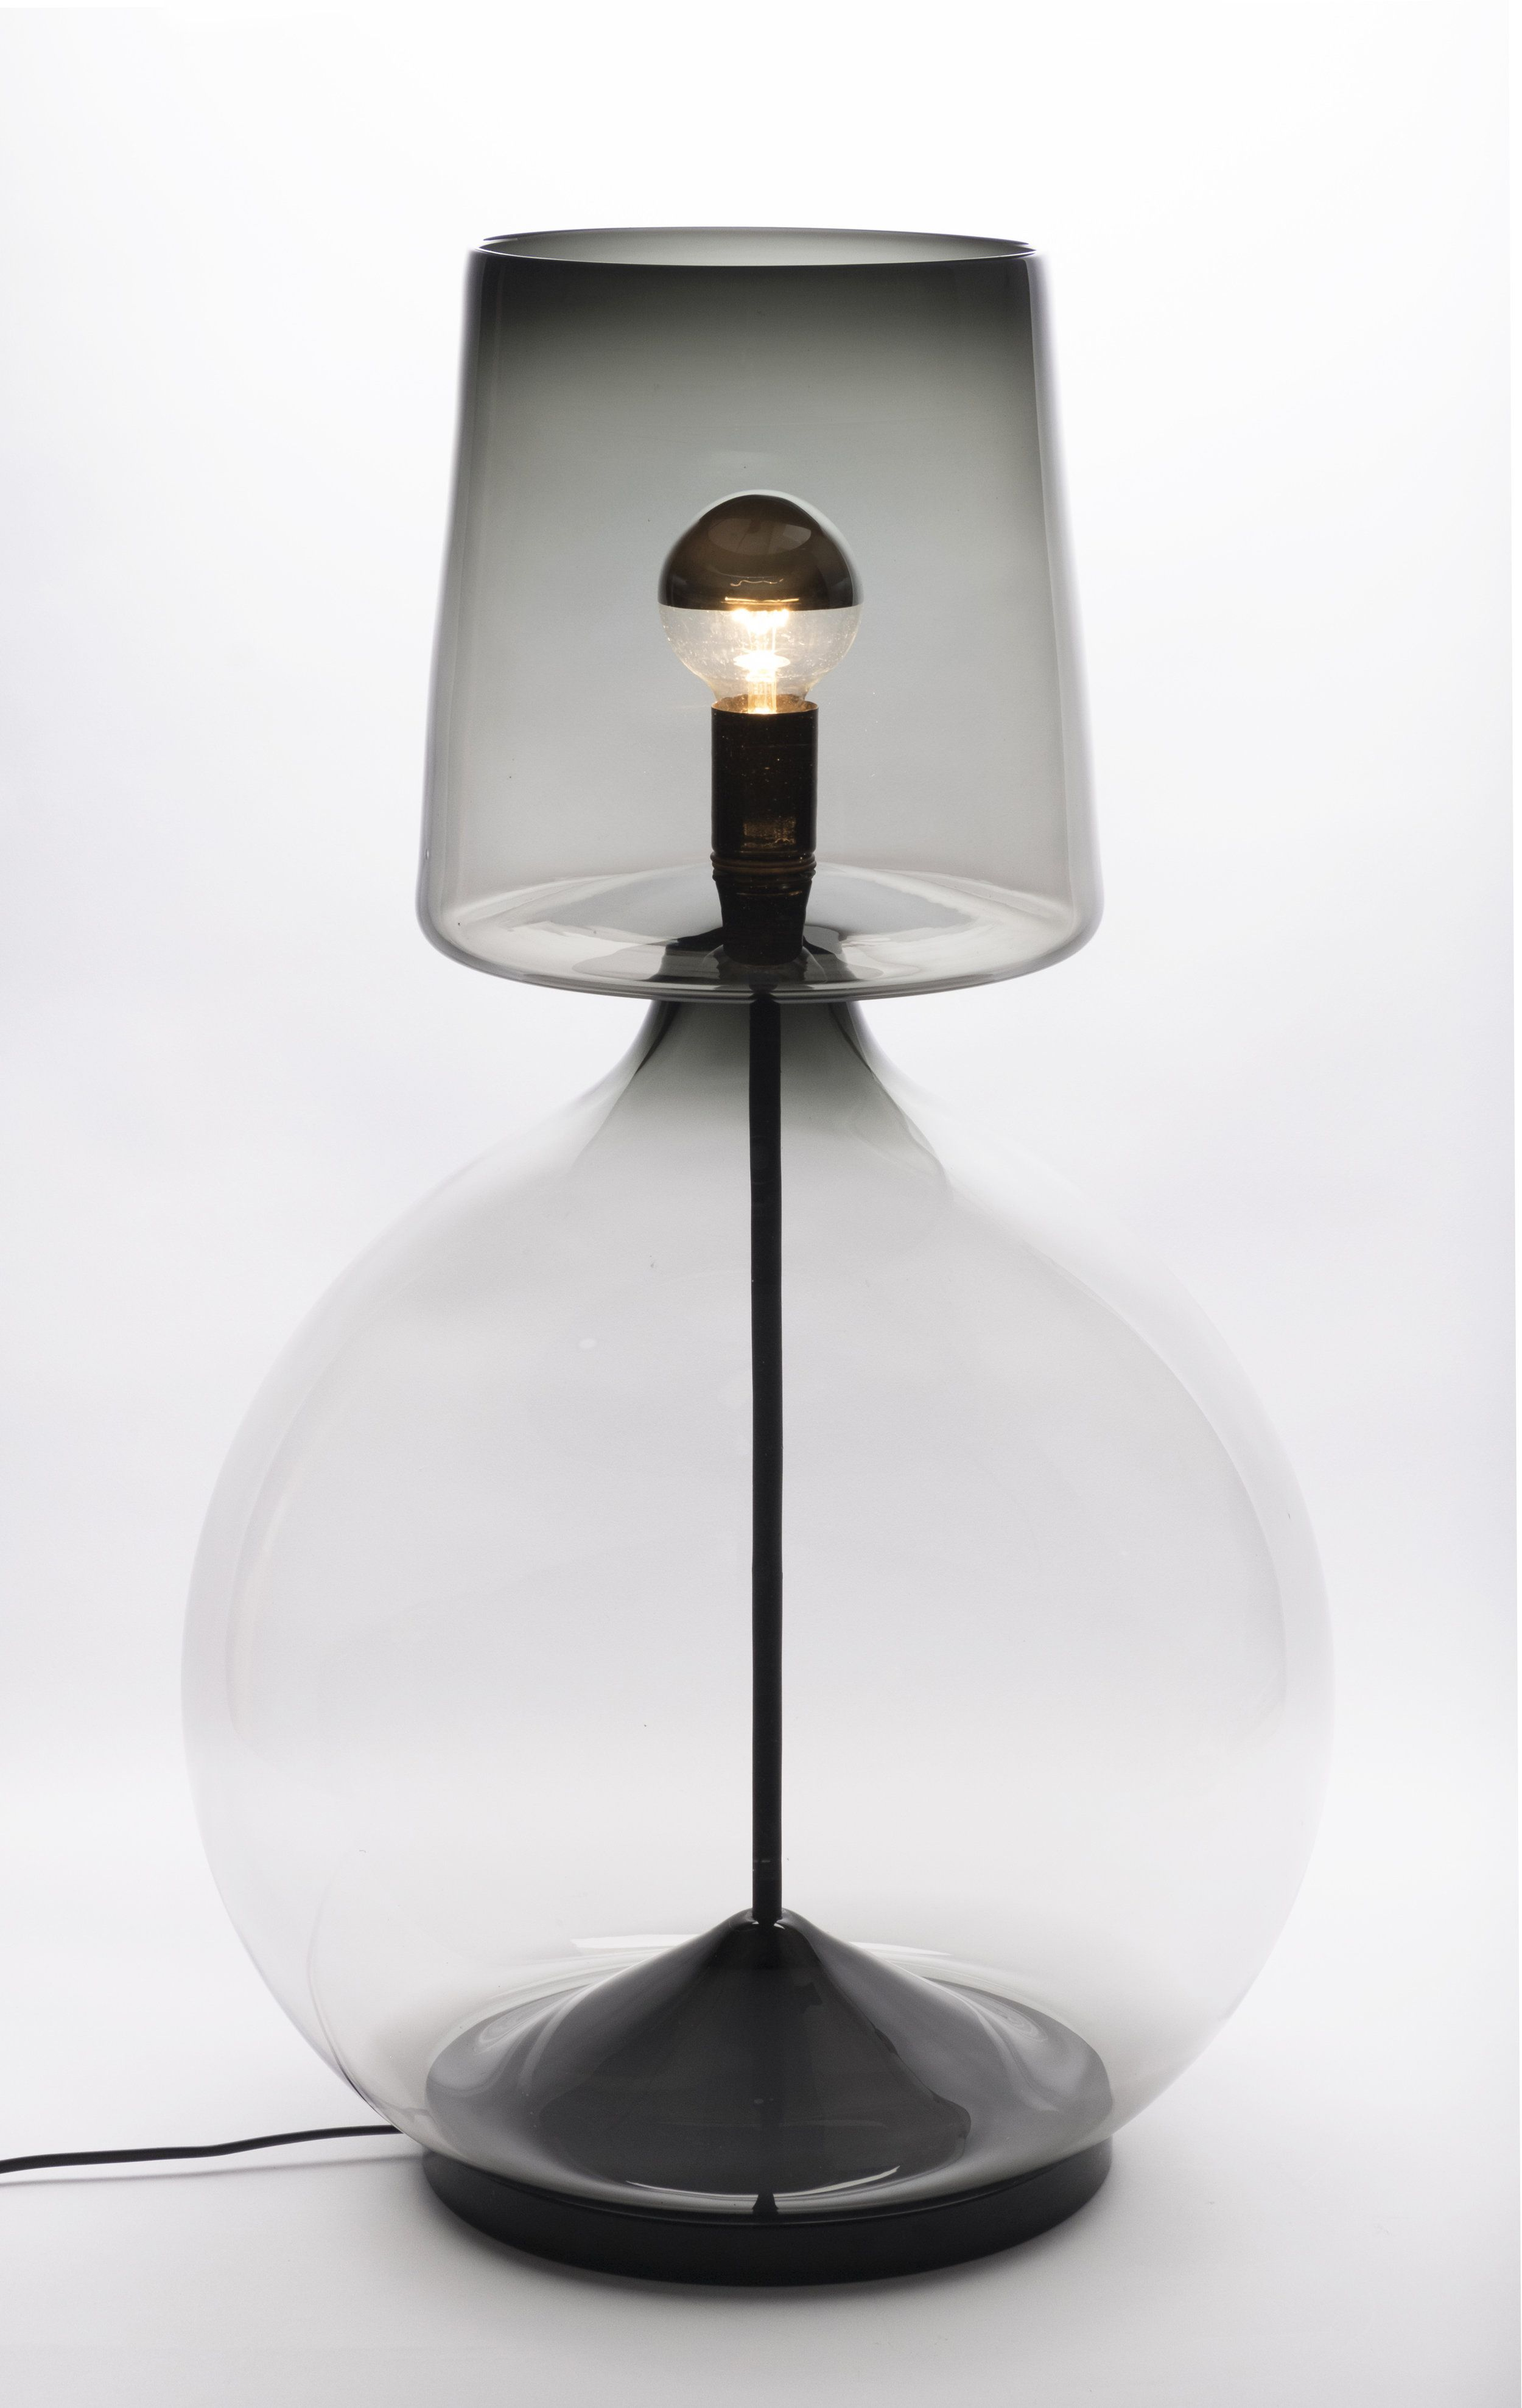 Waterdrop Lamp in 2020 | Hand blown glass, Lamp light ...